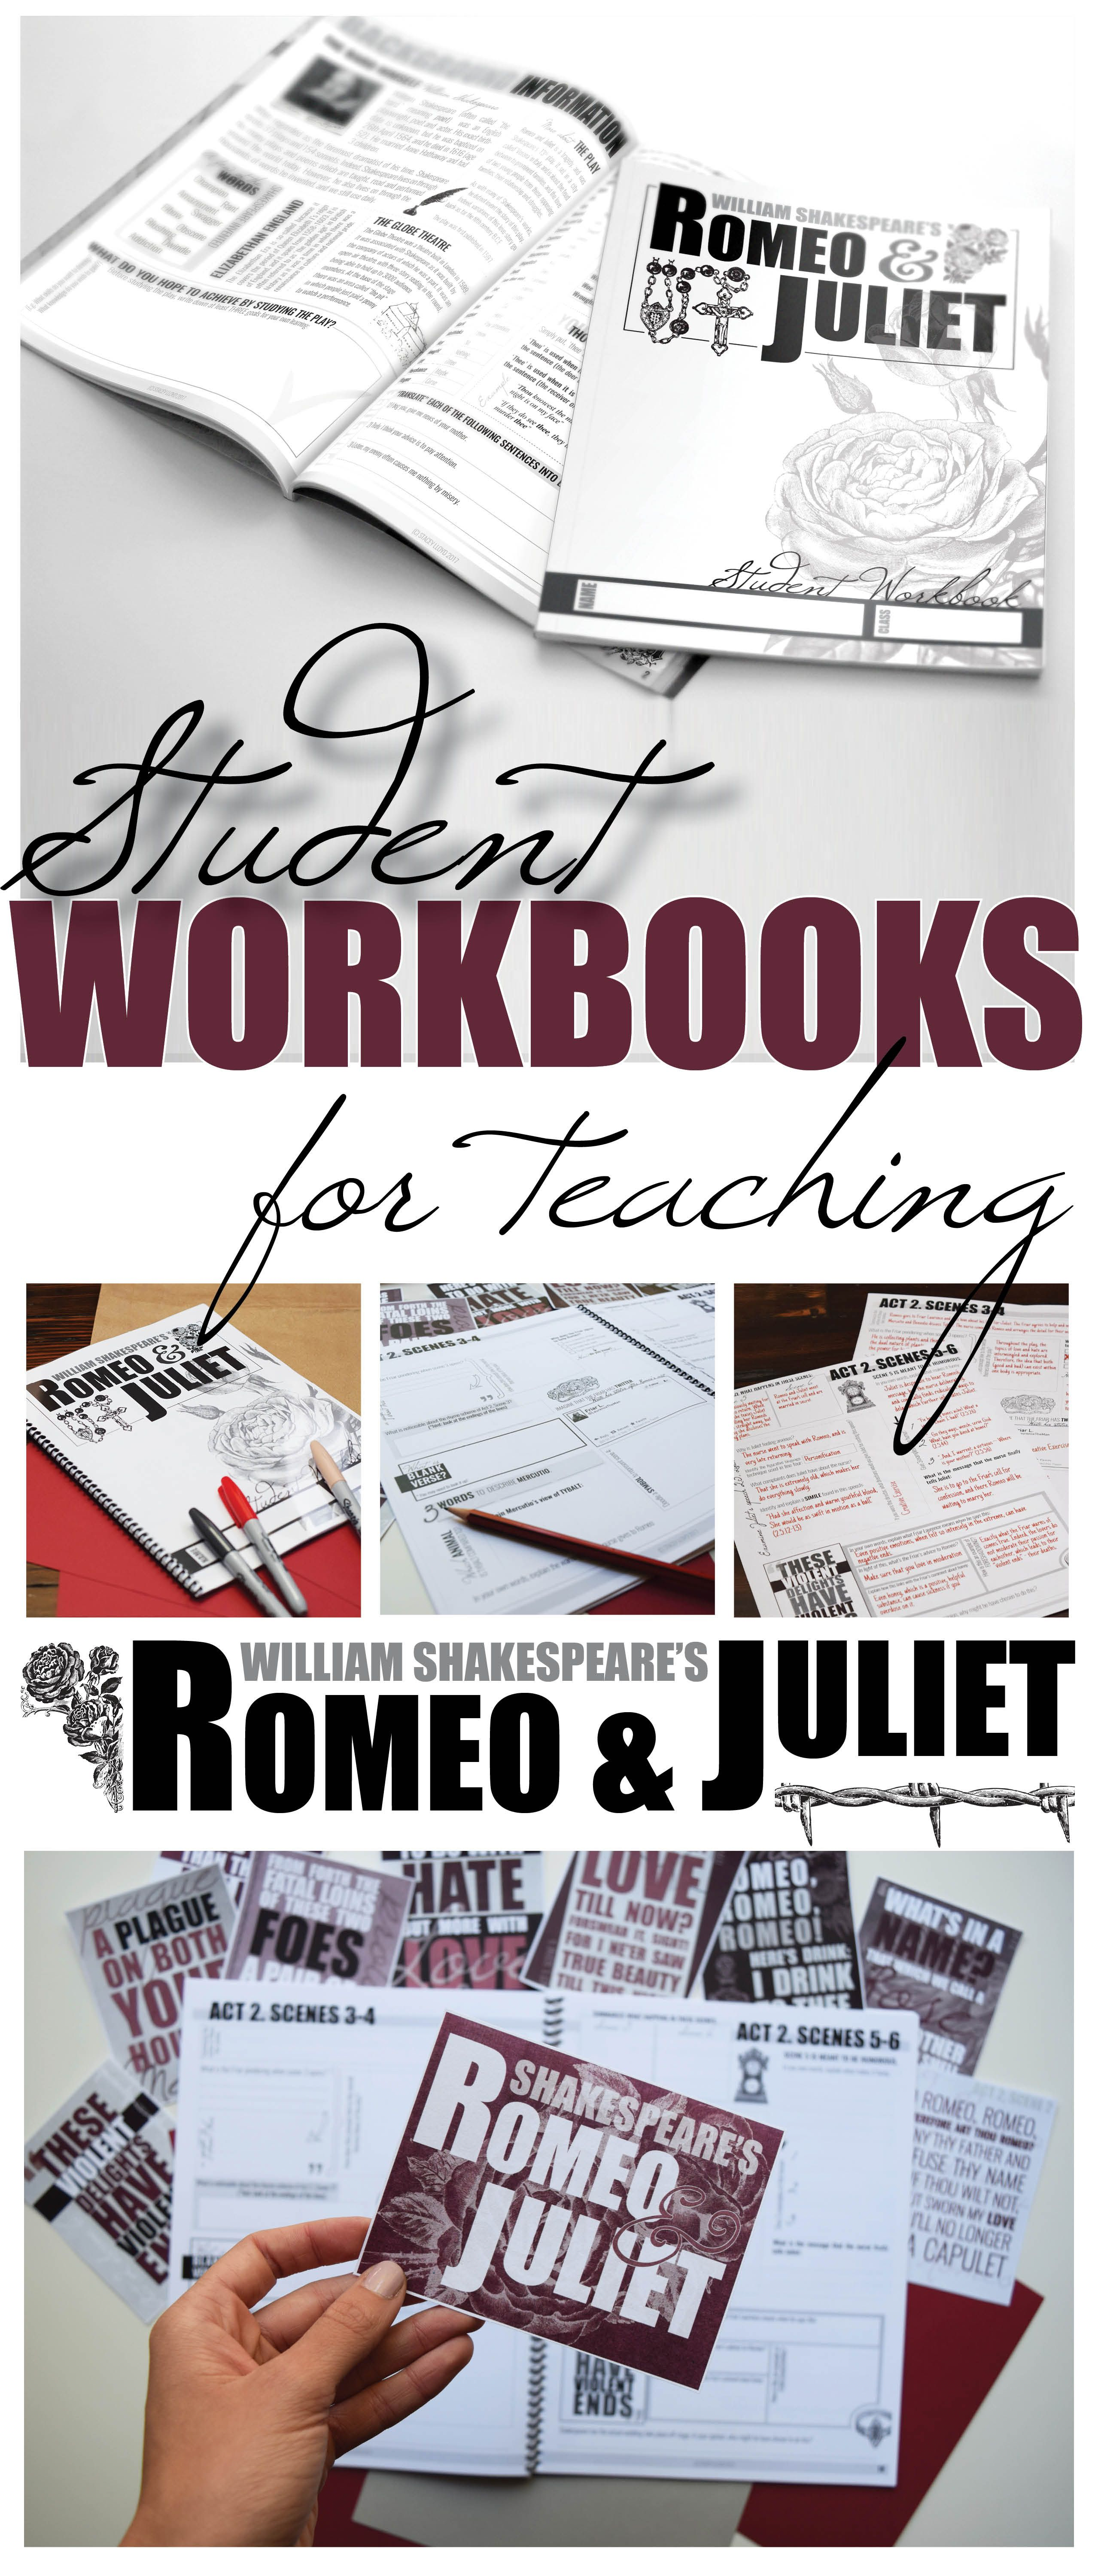 Romeo And Juliet Student Workbooks